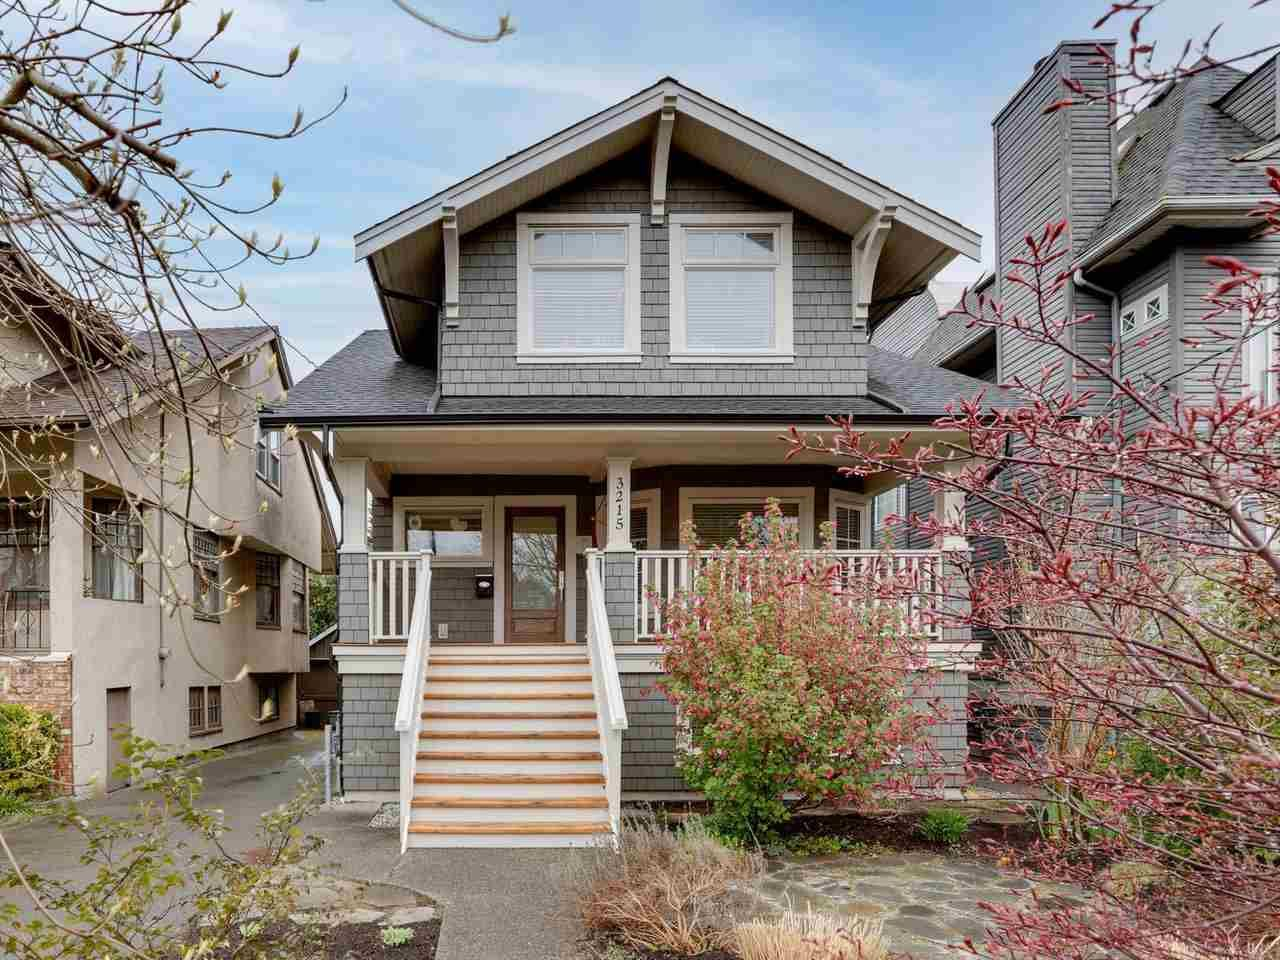 Main Photo: 3215 W 6TH AVENUE in Vancouver: Kitsilano House for sale (Vancouver West)  : MLS®# R2563237